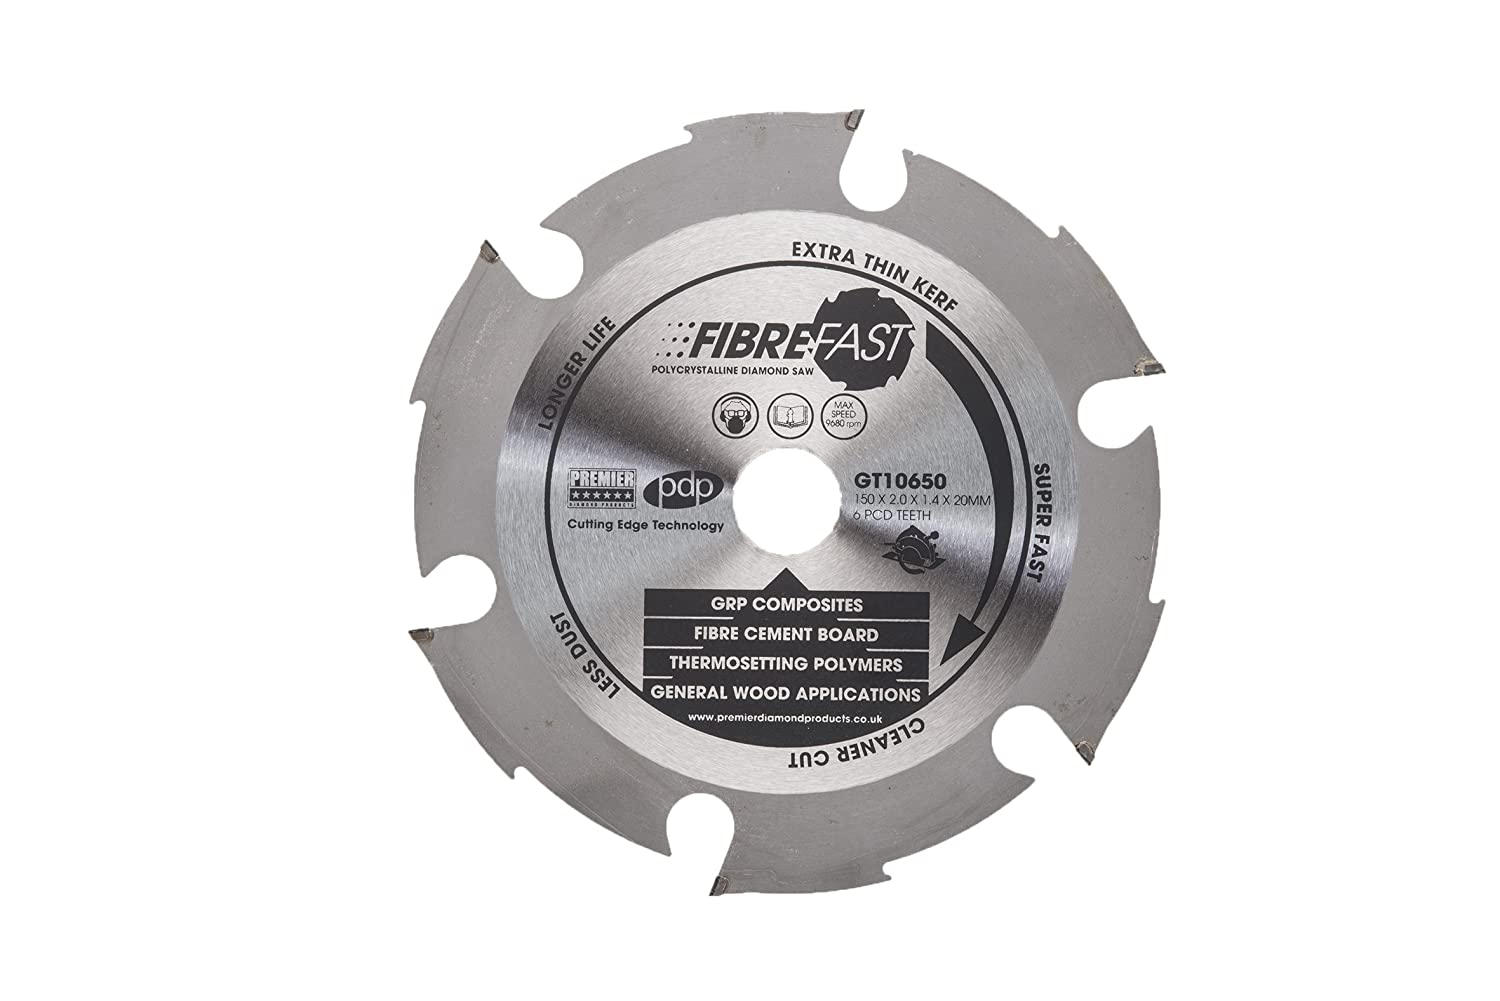 Premier Diamond GT10675 P5-PCD FIBREFAST 12 Teeth Polycrystalline Blade for Fibre Cement Board Silver 300 x 30 mm